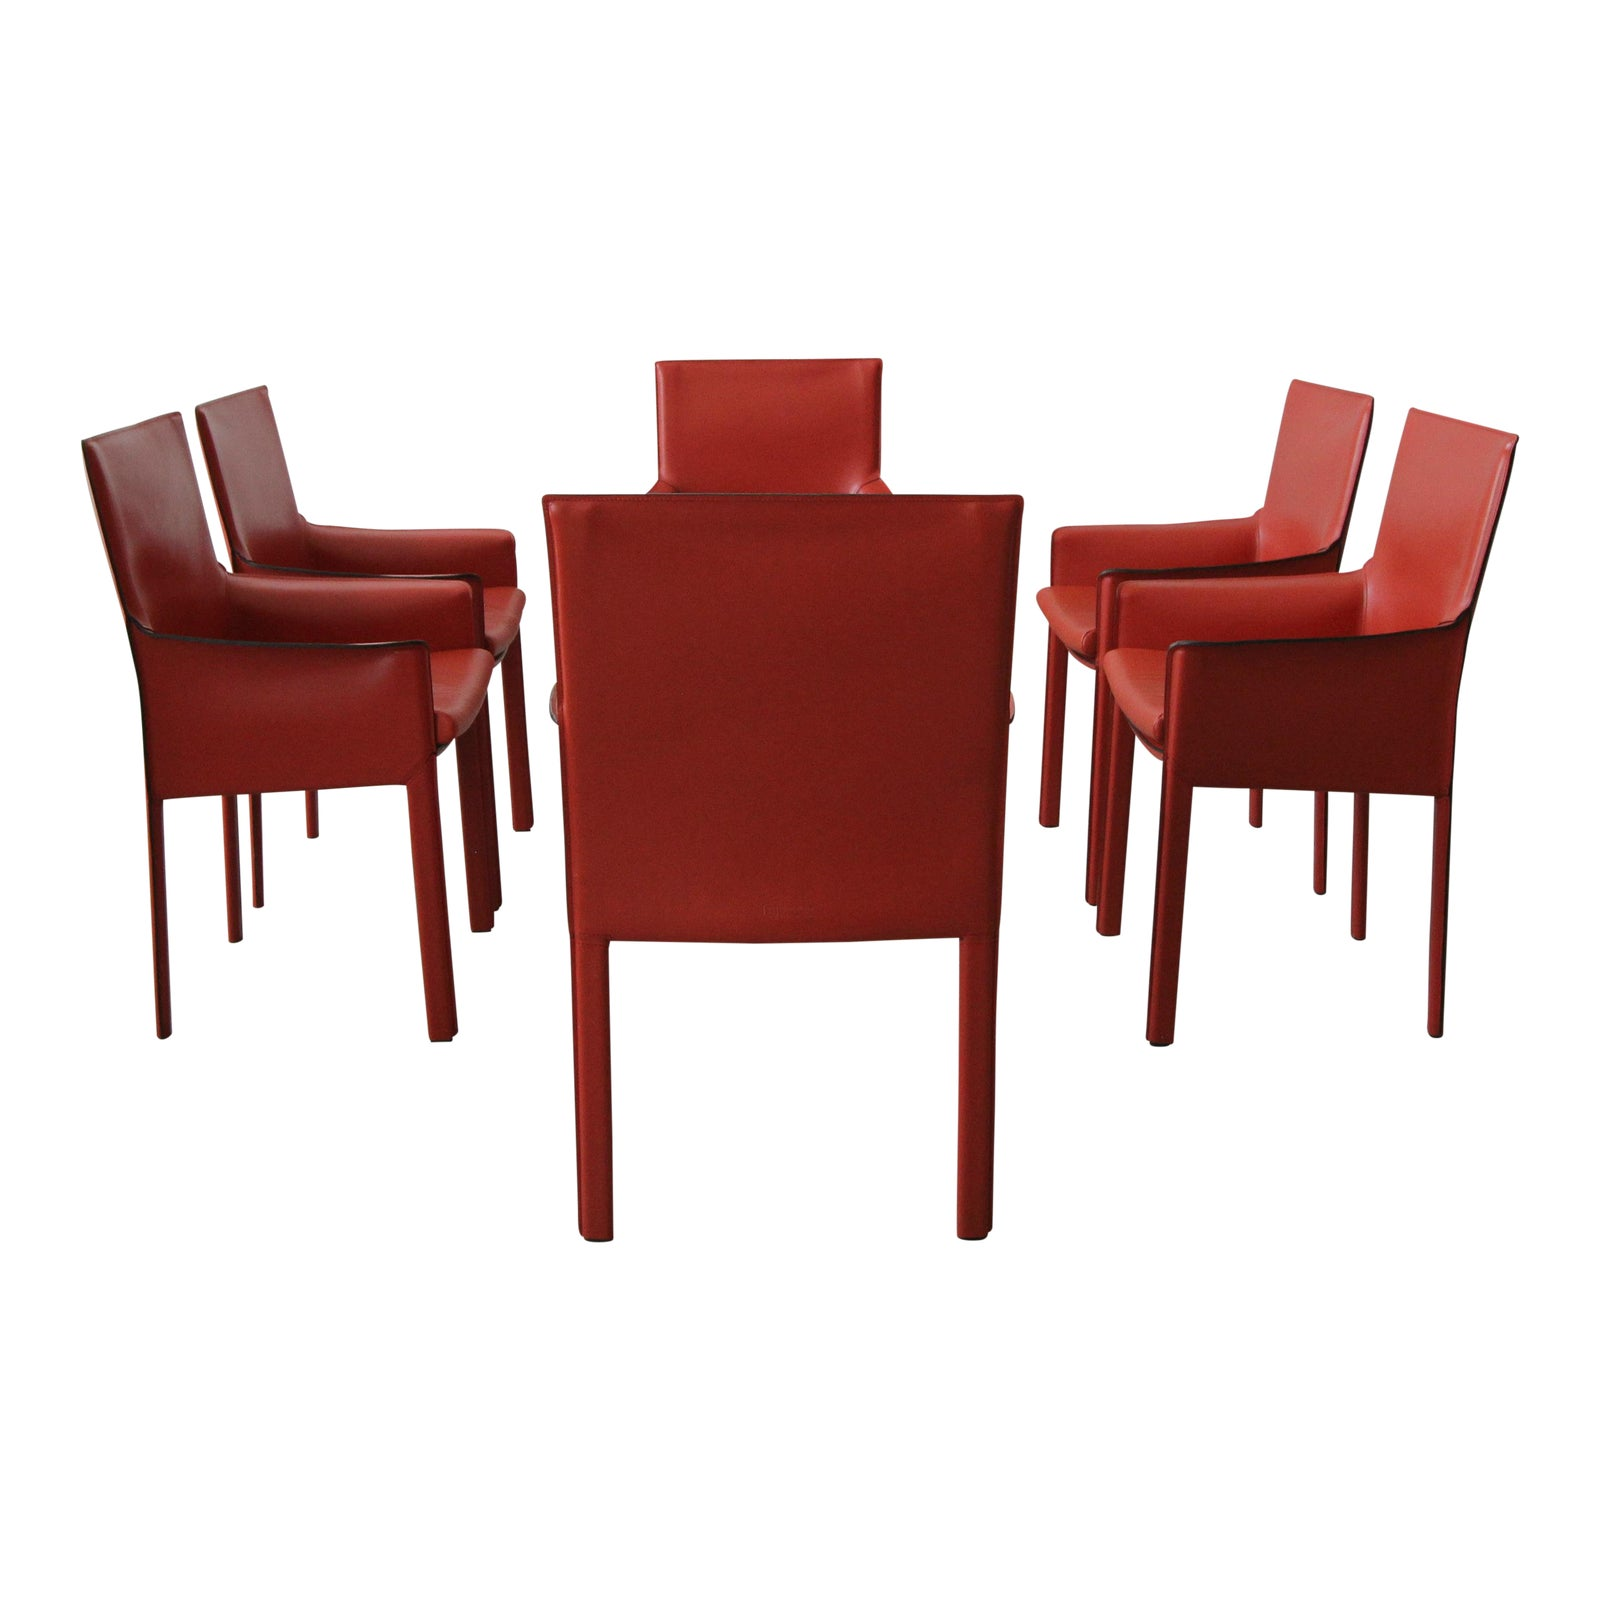 Set Of 6 Orange Italian Leather Dining Chairs By Enrico